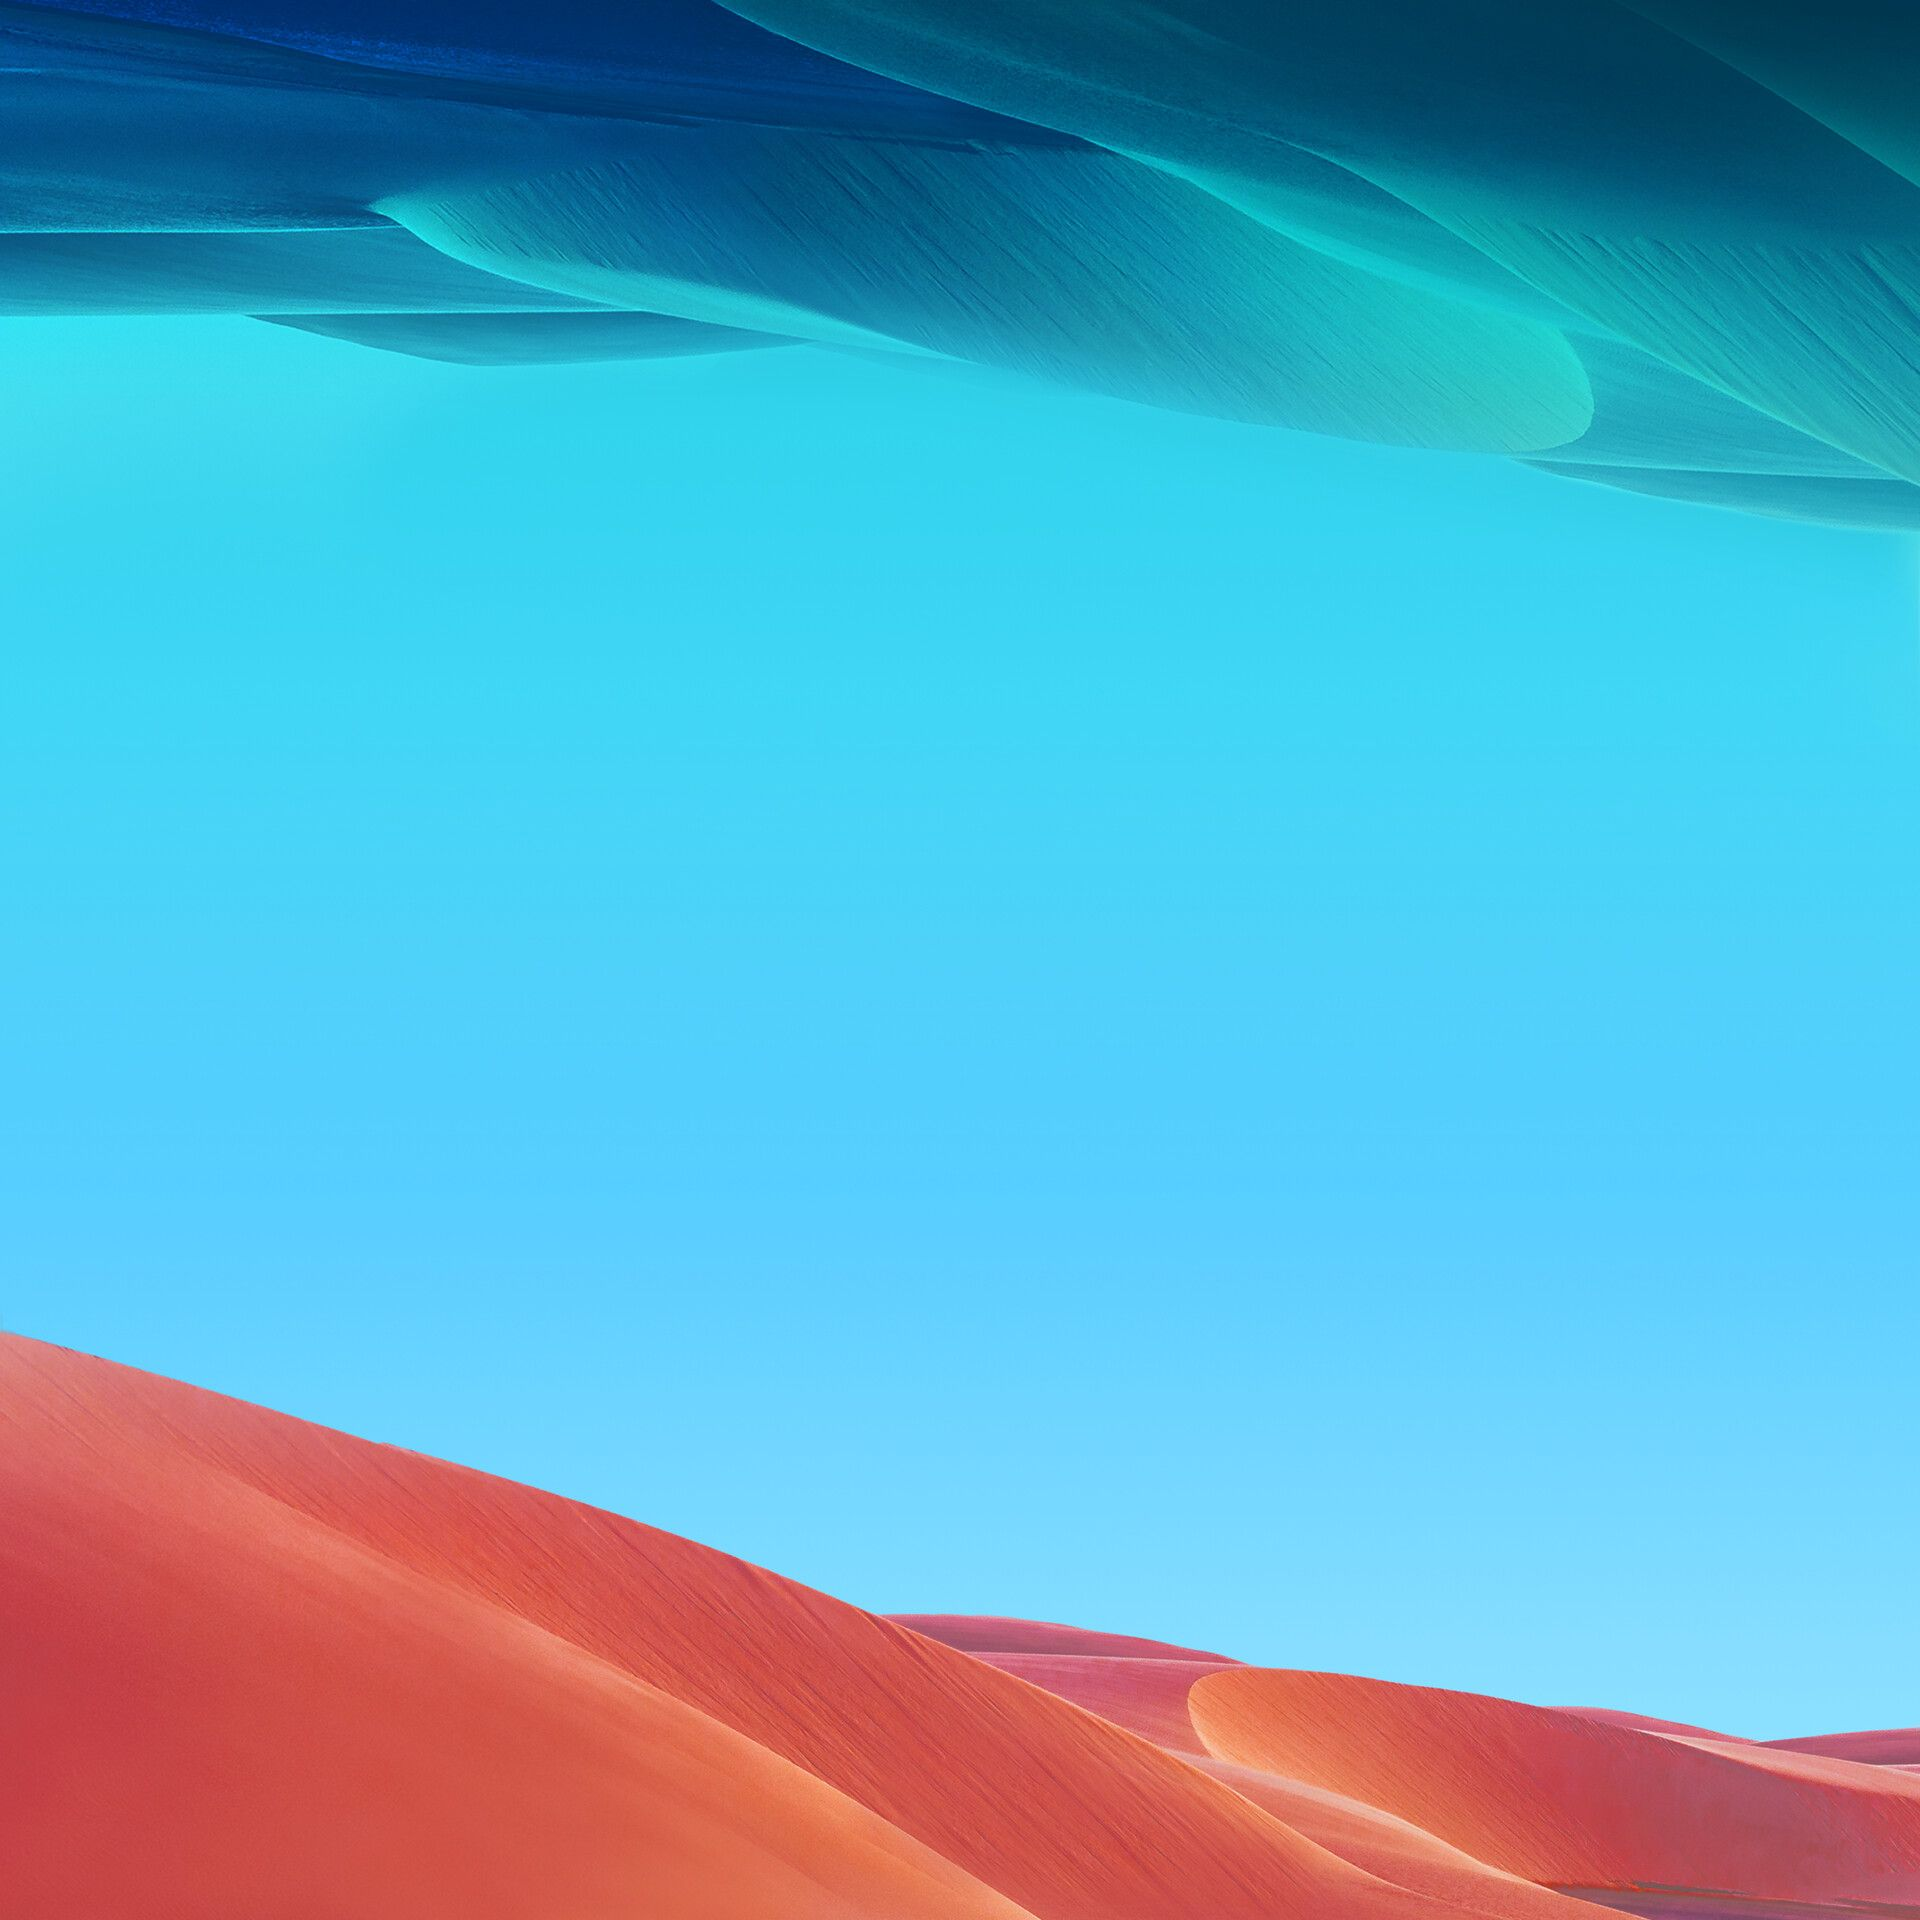 1920x1920 Samsung Galaxy M10, Galaxy M20 wallpapers now available to ...